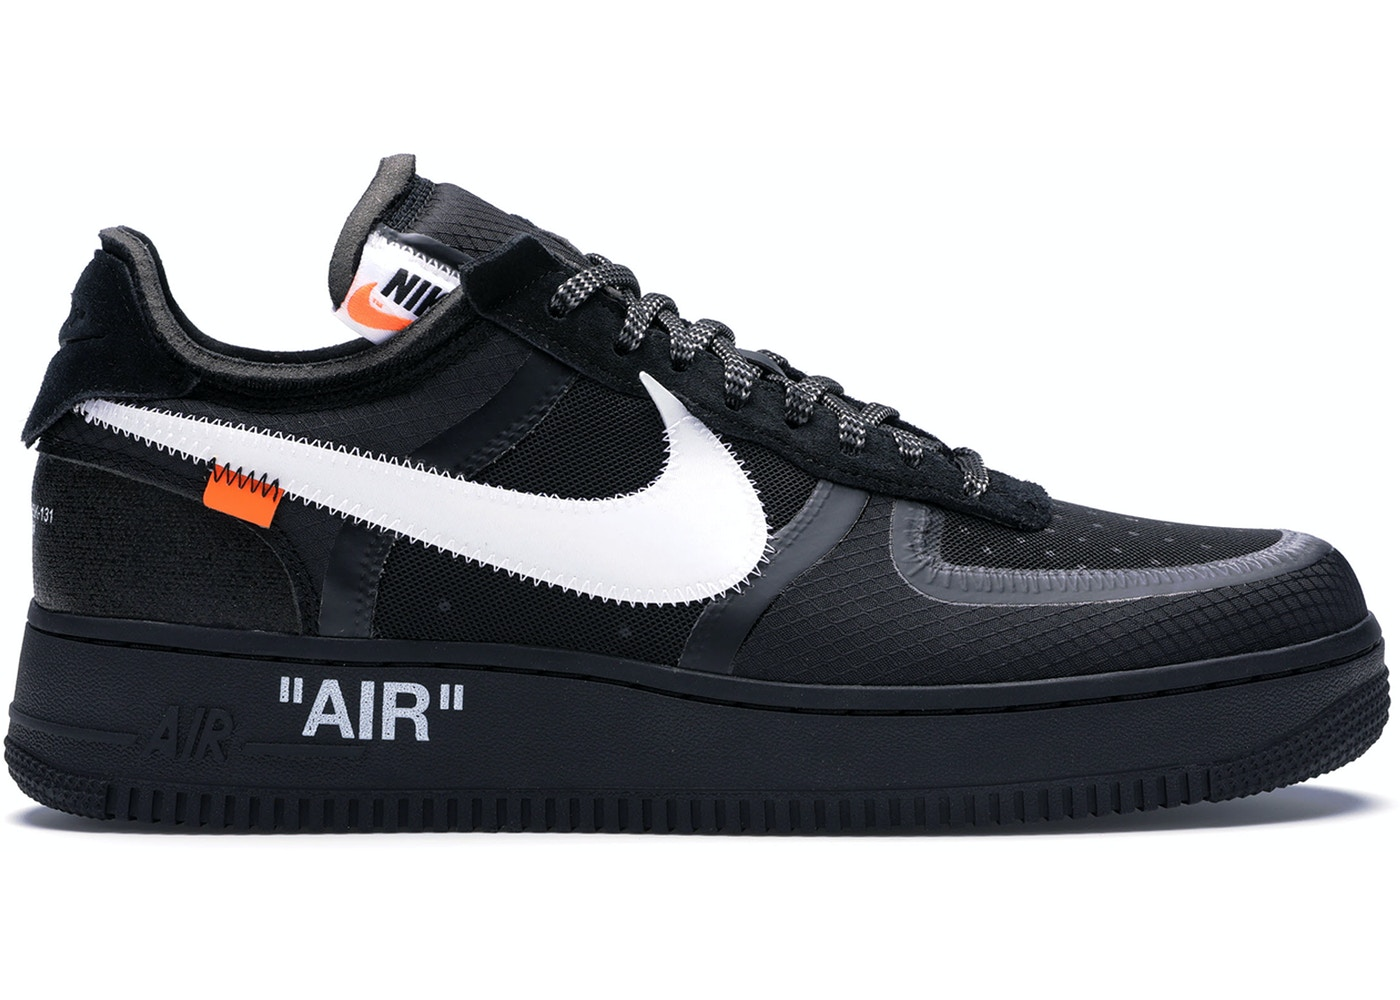 sports shoes 05499 83d51 Air Force 1 Low Off-White Black White - AO4606-001